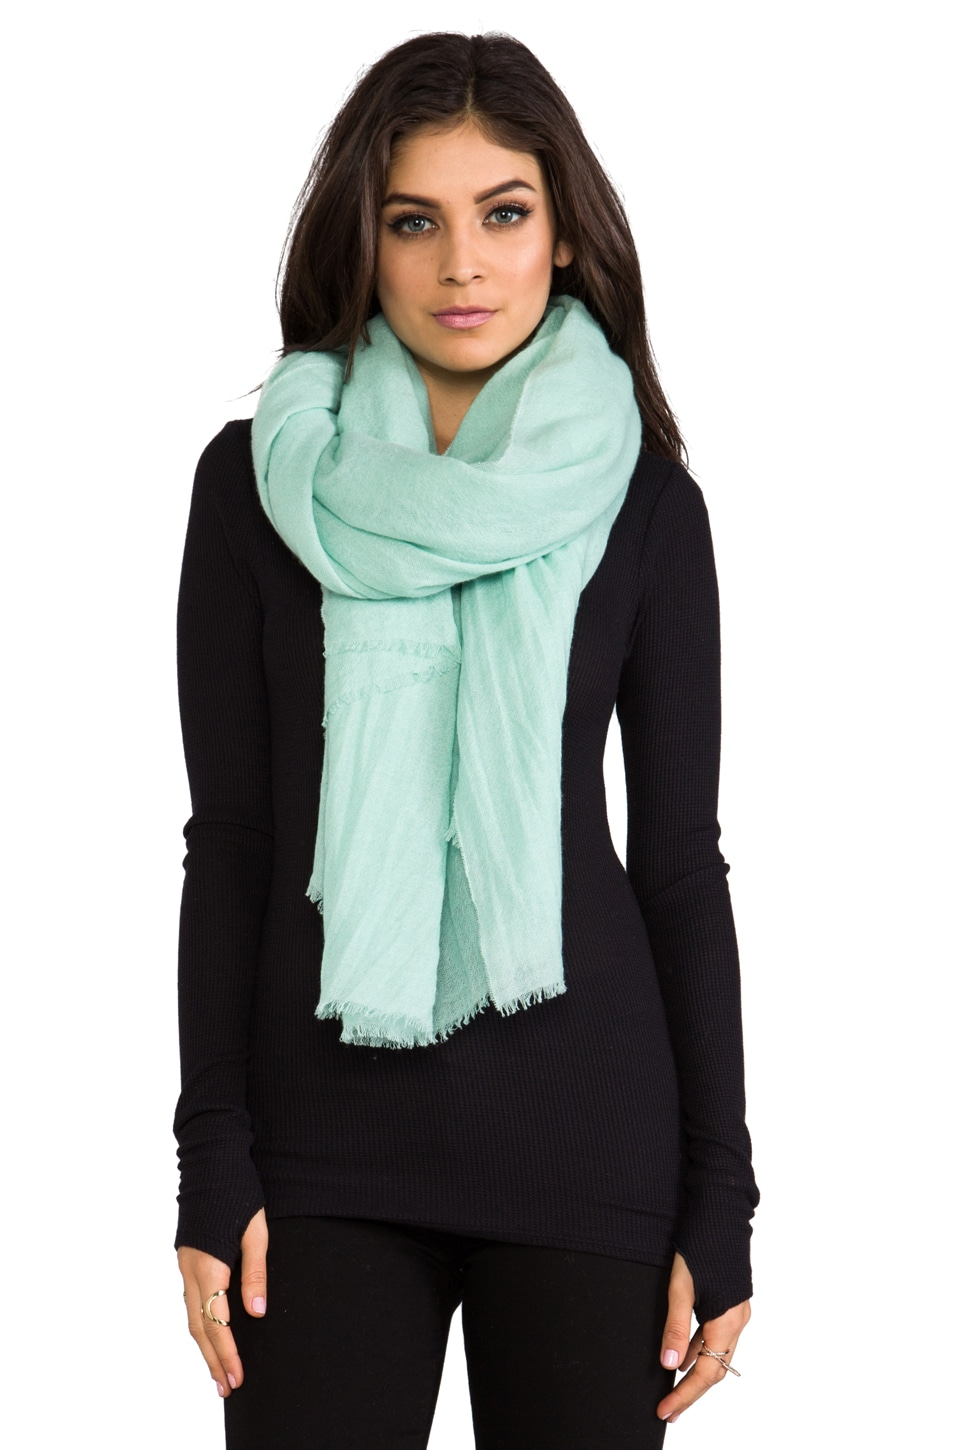 DemyLee Solid Woven Gauze Scarf in Foam Green